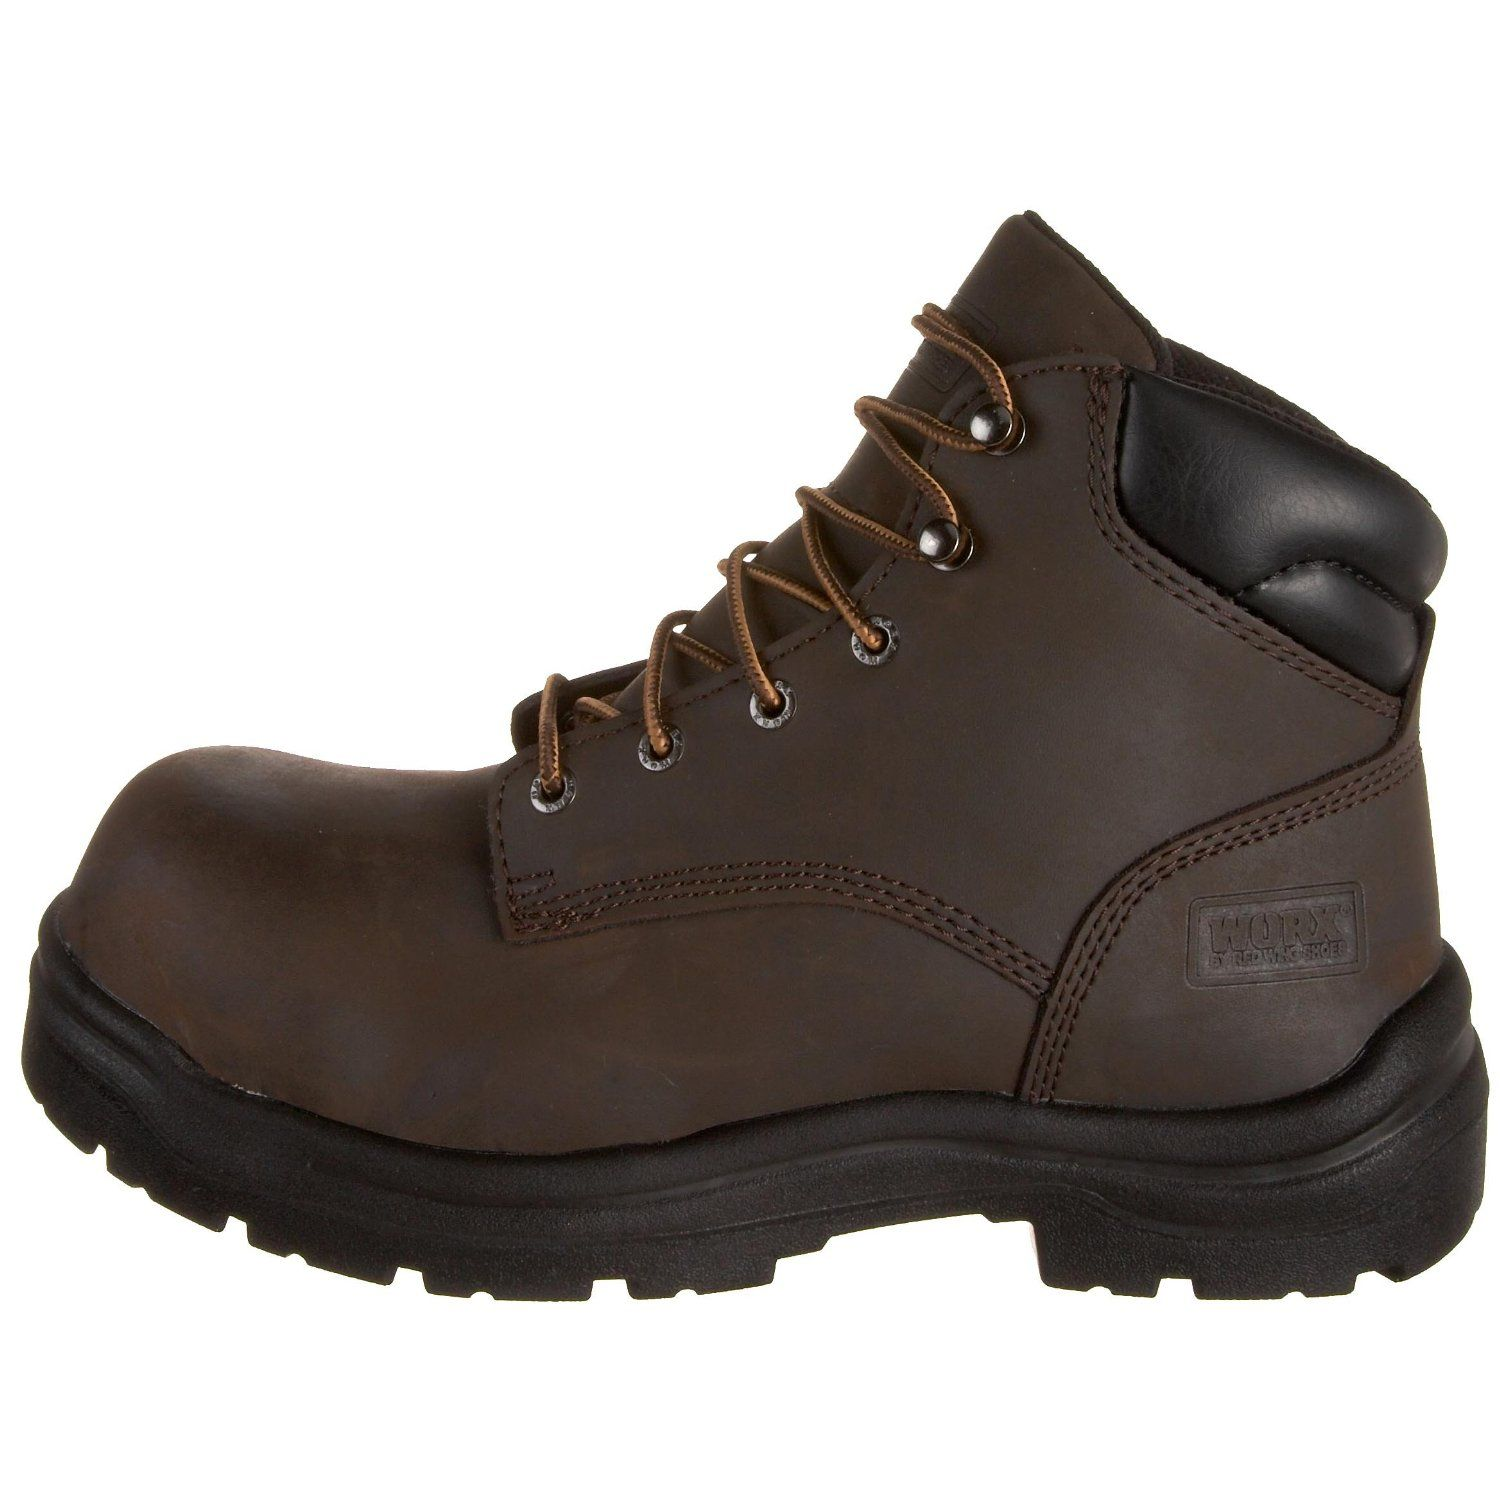 9cc58b44e2b WORX 5616 Work Boot   Lace Up Work Boot Designs in 2019   Boots ...